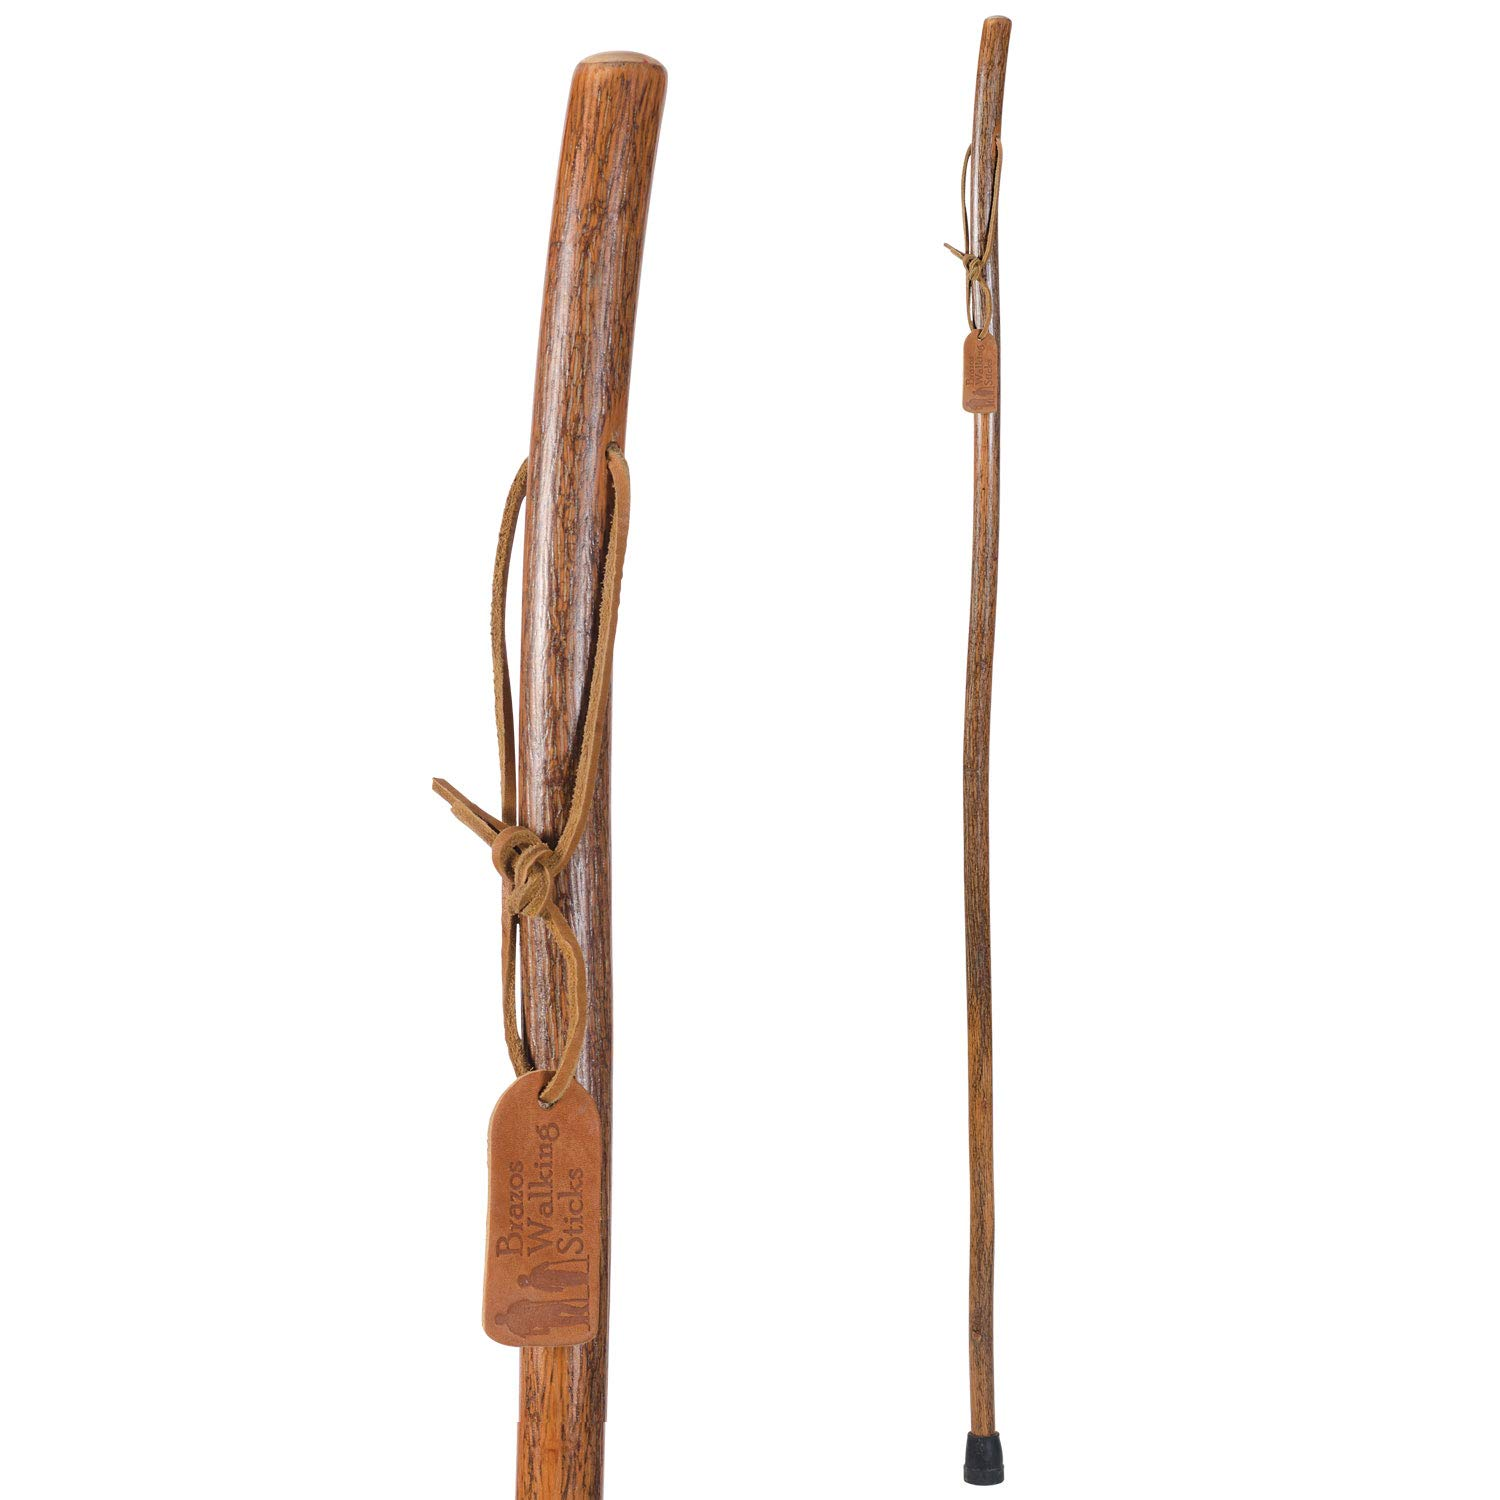 Brazos Free Form Hickory Walking Stick Trekking Pole, Made in the USA